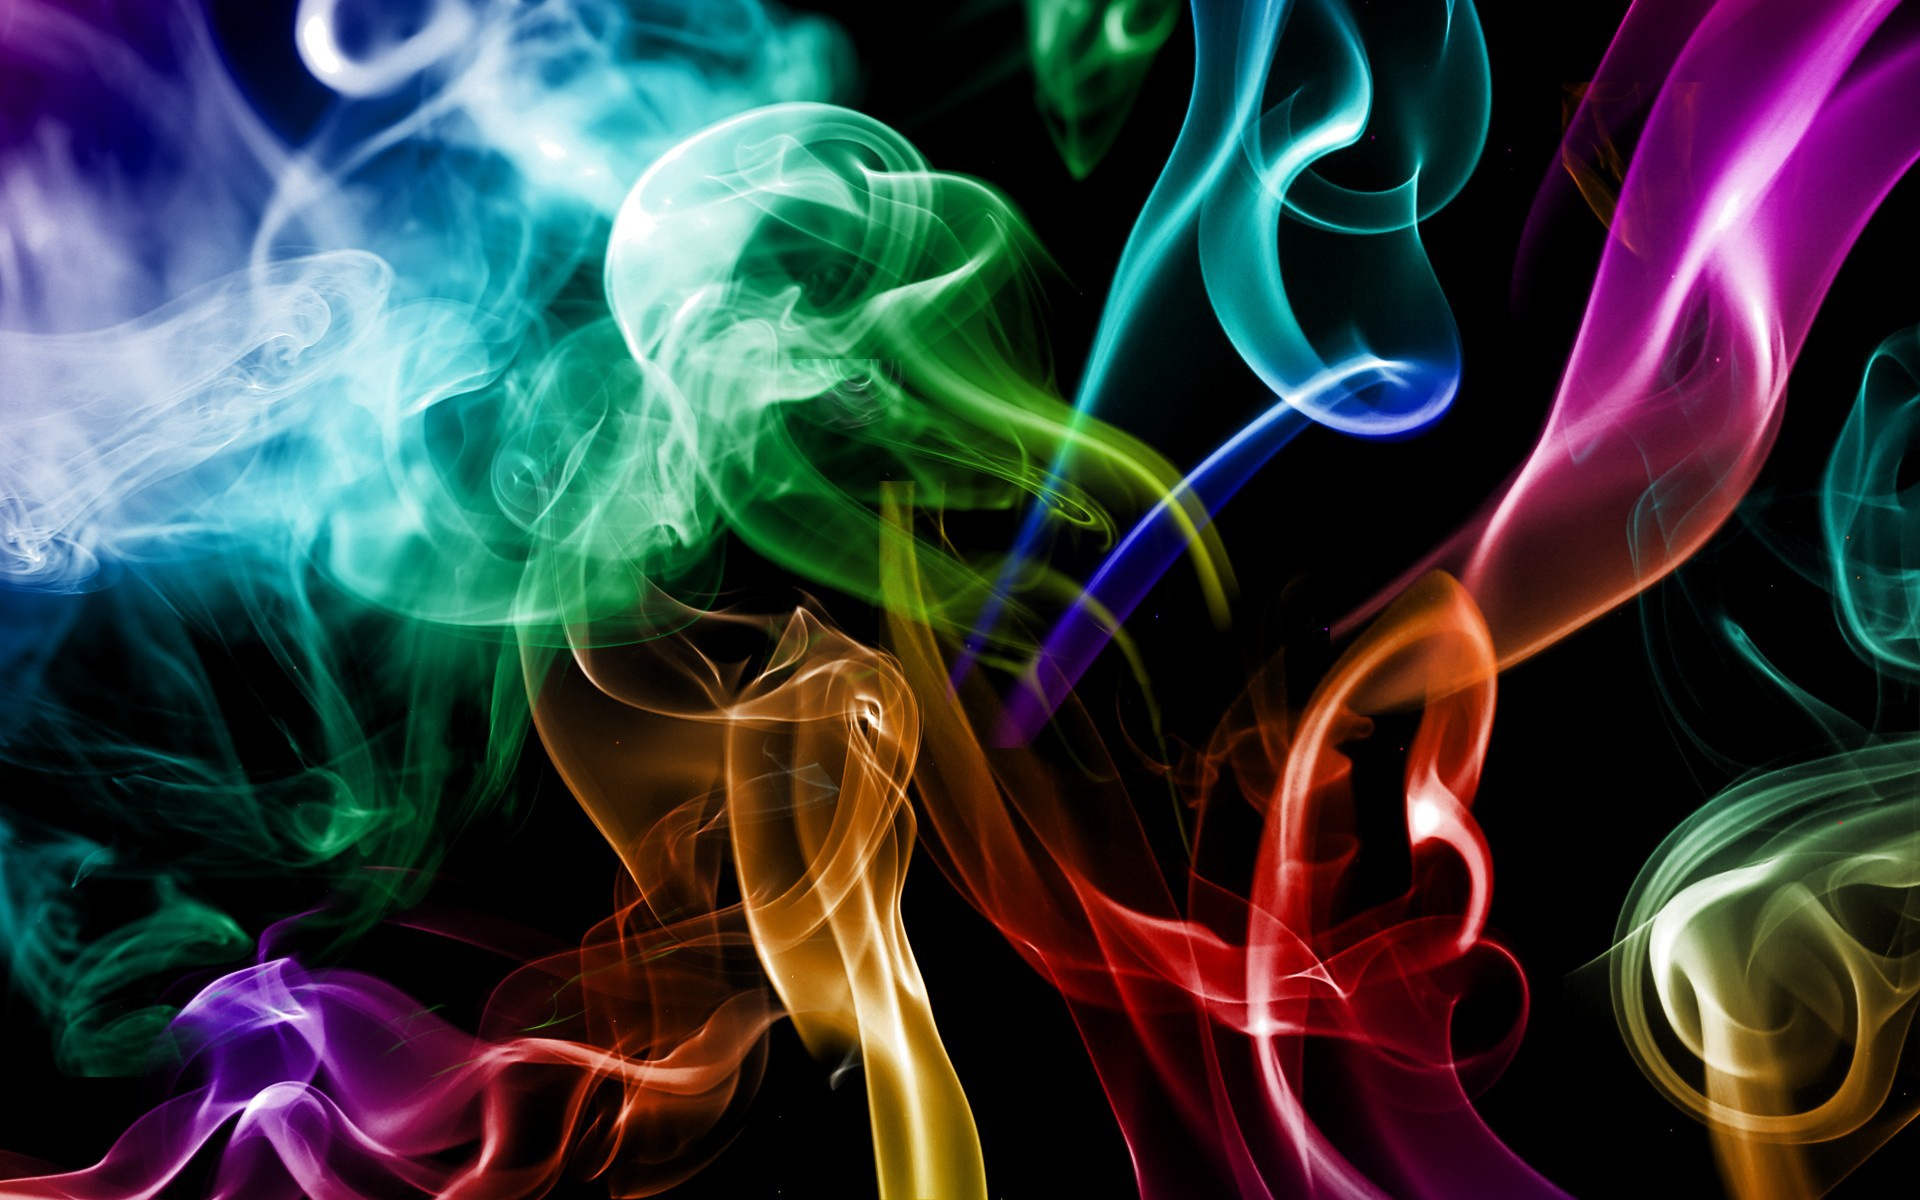 Smoke-colored-abstraction-creative_1920x1200